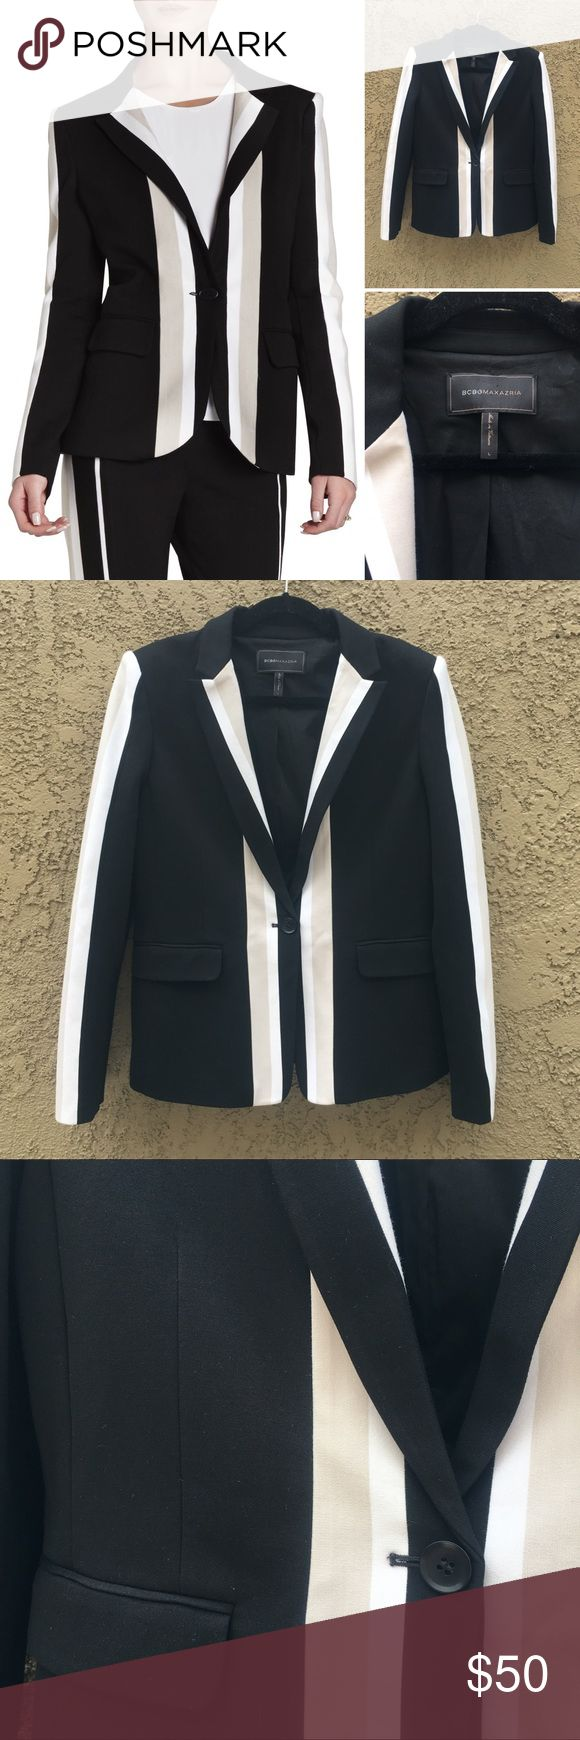 BCBCMaxazria blazer BCBG MaxAzria Aiden jacket. Contrast detail. Size Large. In excellent condition! Offers welcomed!! BCBGMaxAzria Jackets & Coats Blazers